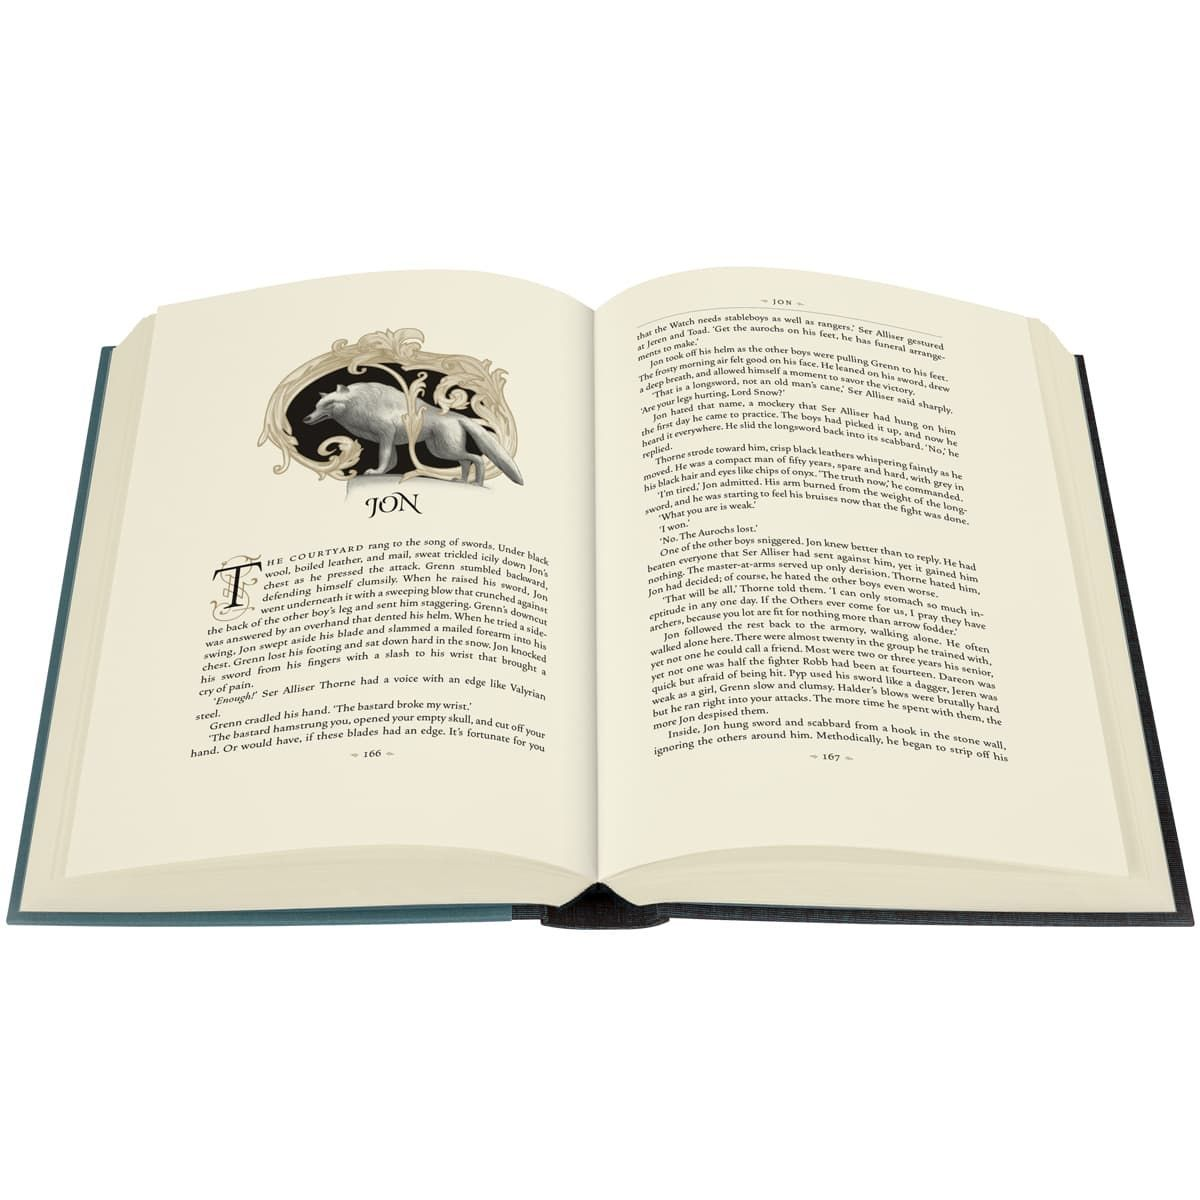 Award-winning illustrator Jonathan Burton's glorious colour illustrations take the reader deeper into the realms of Westeros than ever before. Lavish binding designs are blocked with striking images of wolves, stags and lions, against shimmering gold and silver landscapes. (Photo: Folio Society)<p></p>